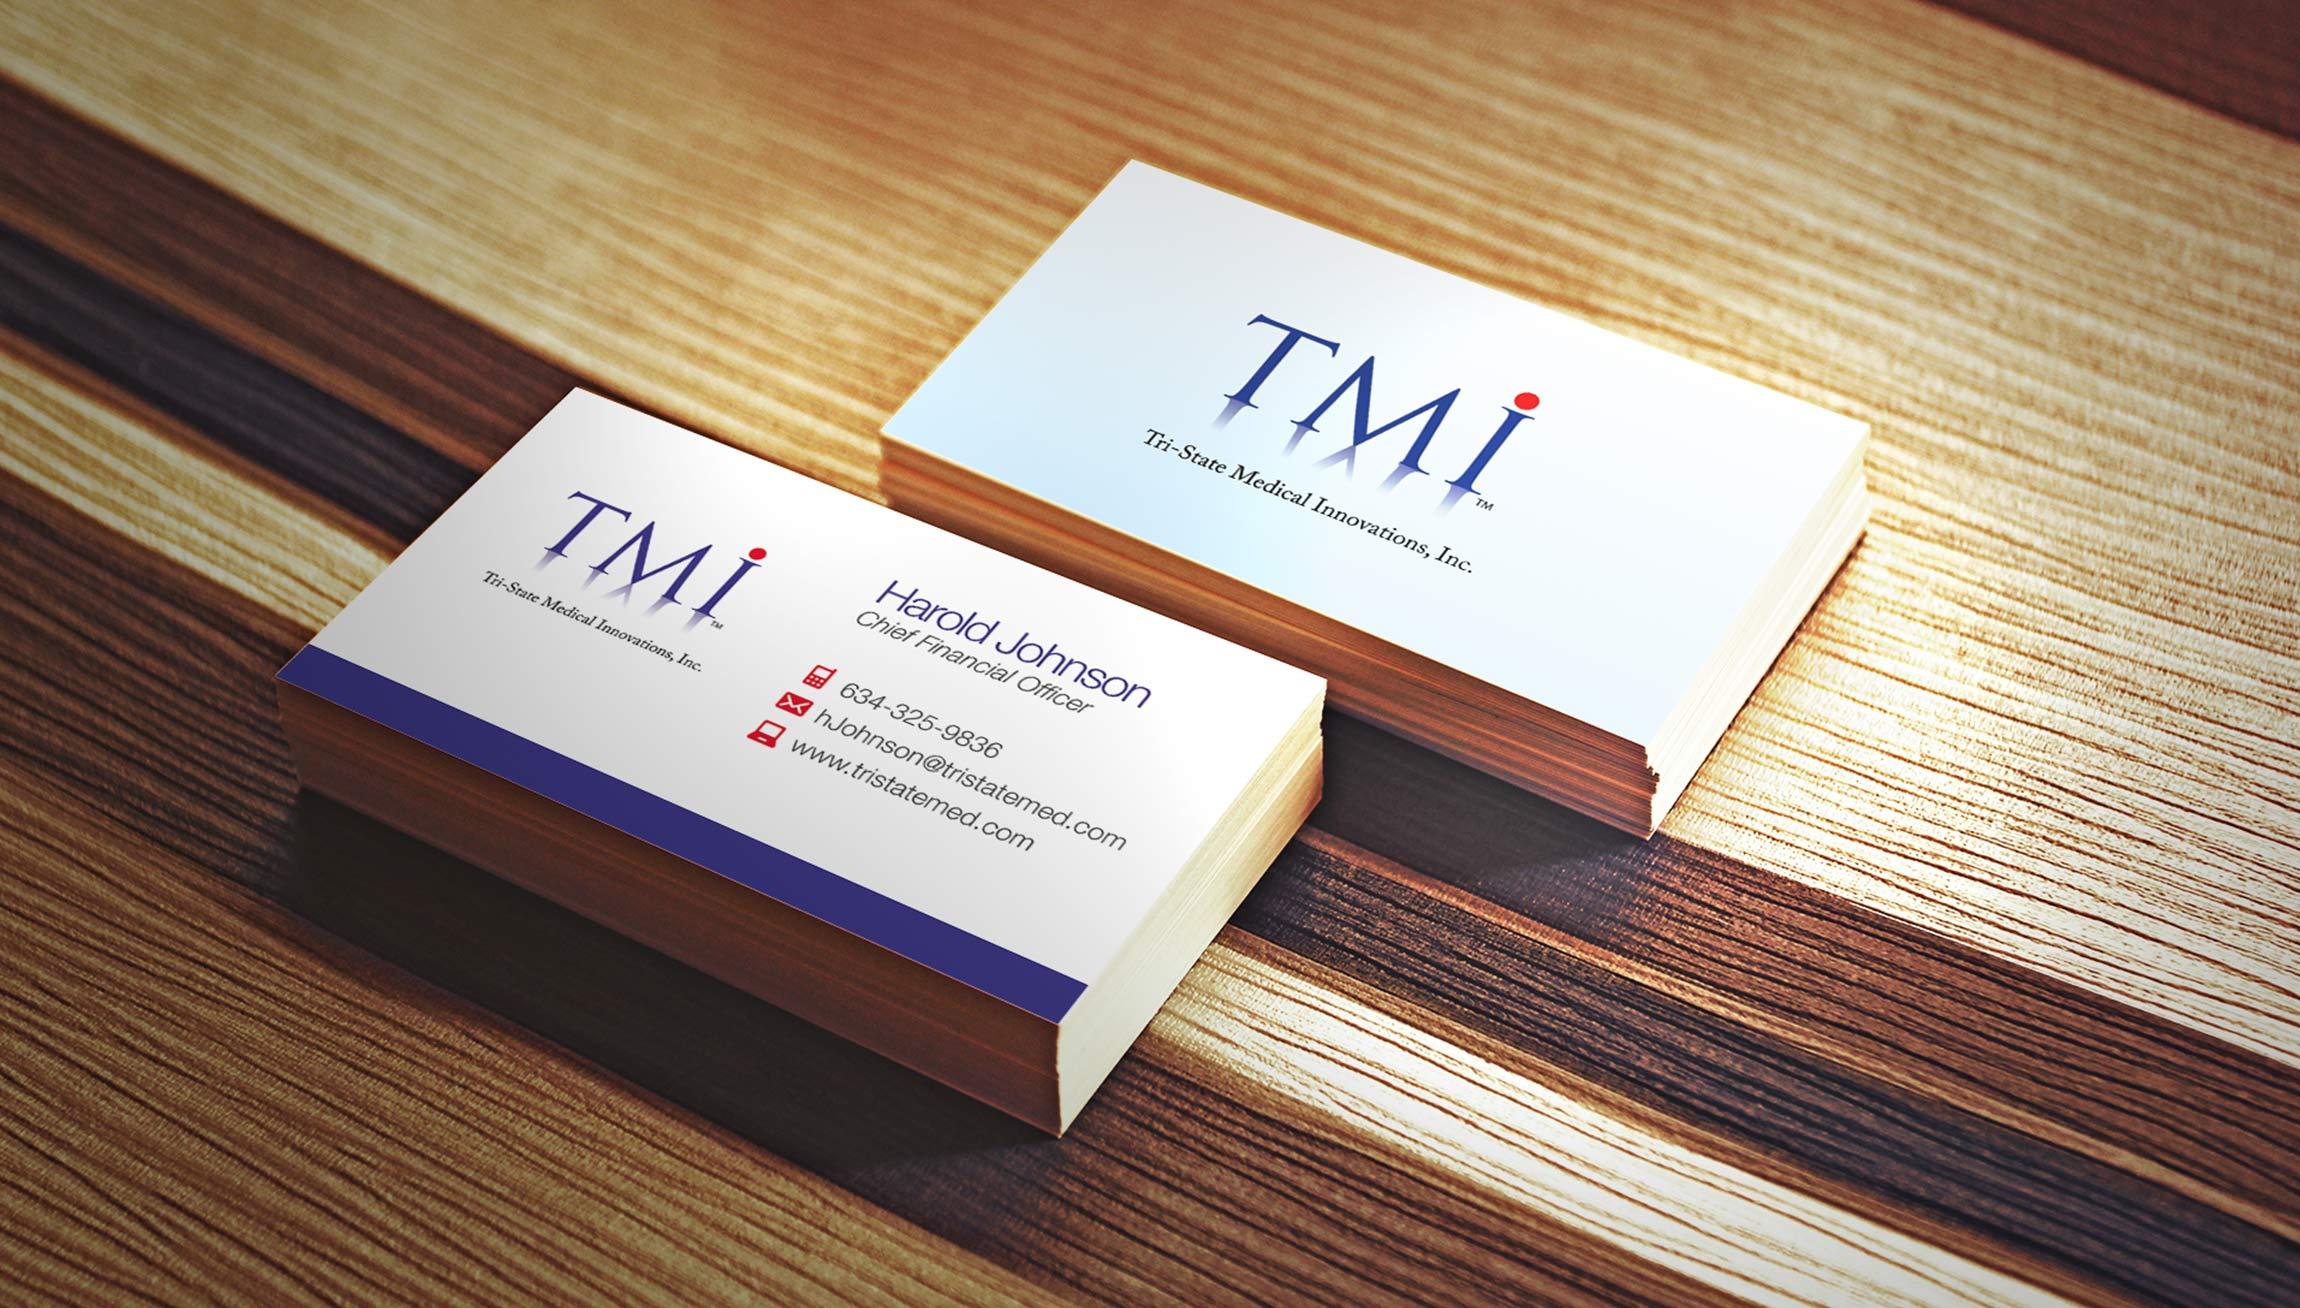 Printing and Design - Business Cards Graphic Design Mockup for Tri-State Medical Innovations